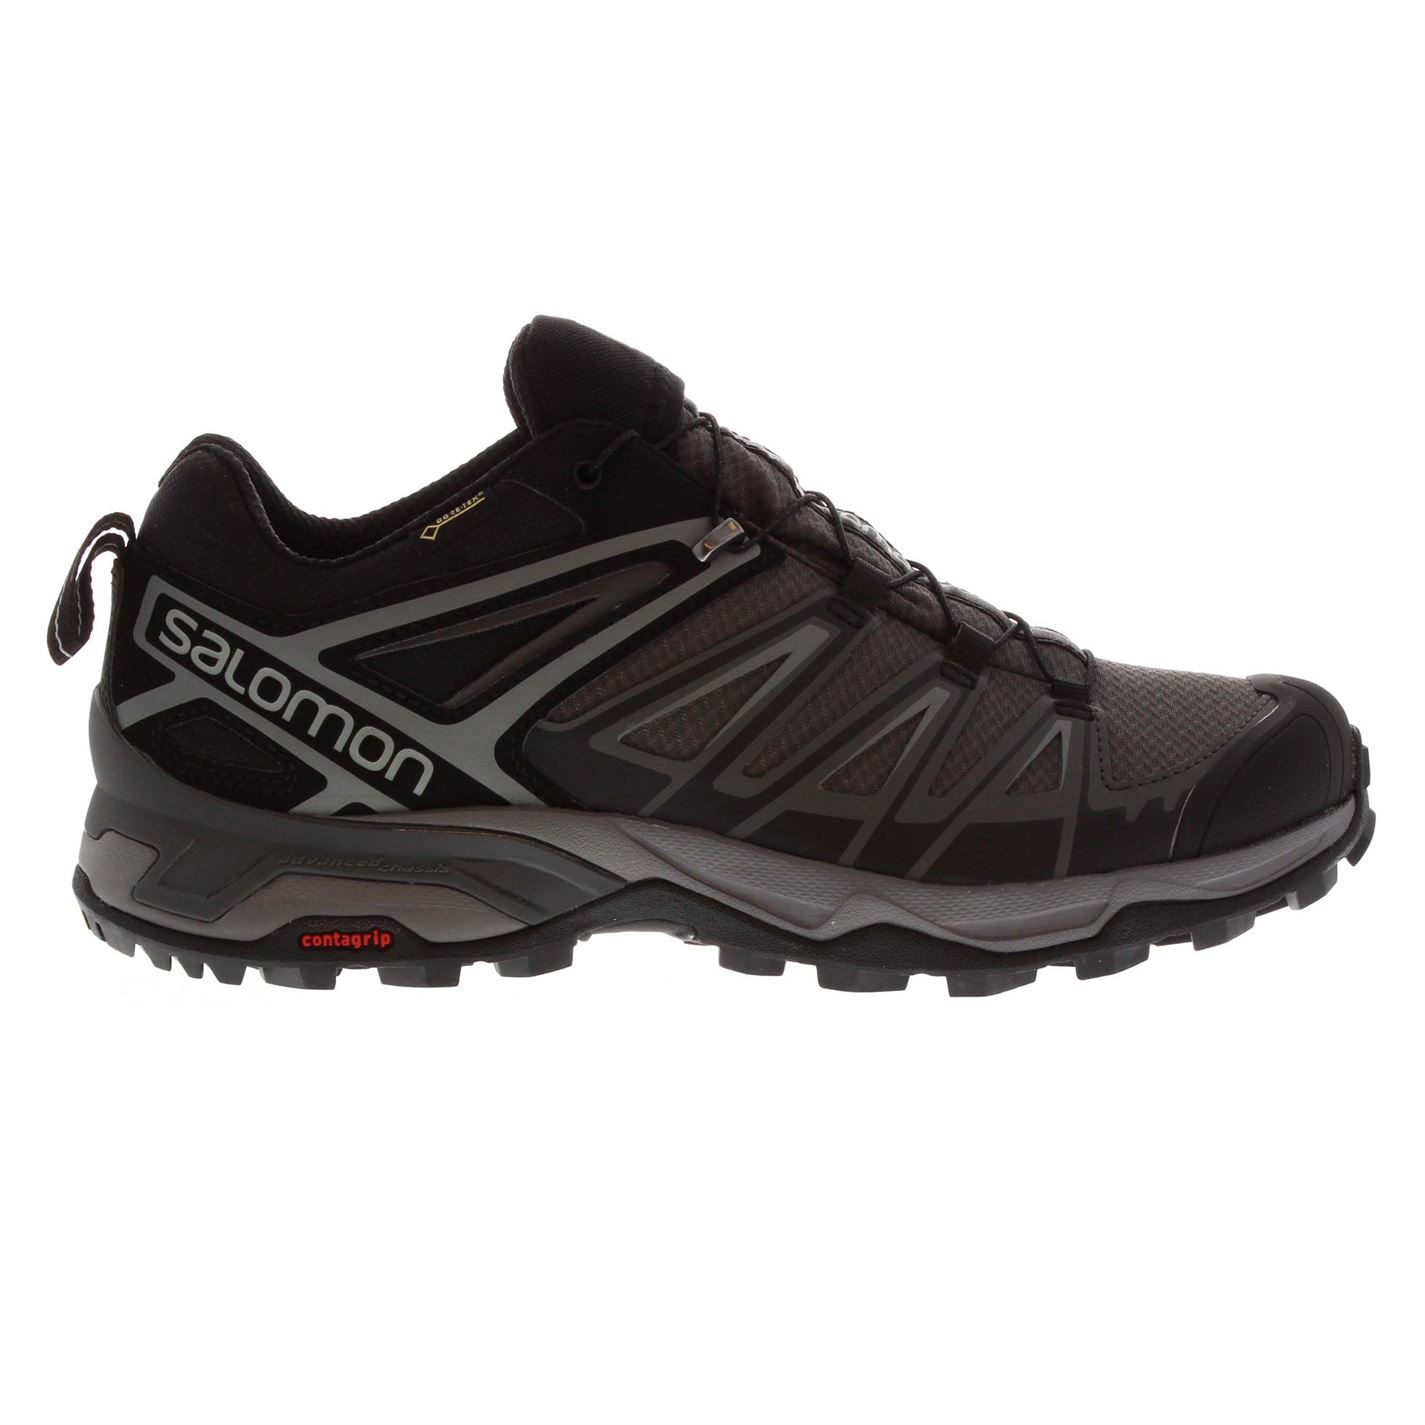 c7f27dc6112 Salomon X Ultra 3 GTX Low Walking Shoes Mens Hiking Footwear Boots ...